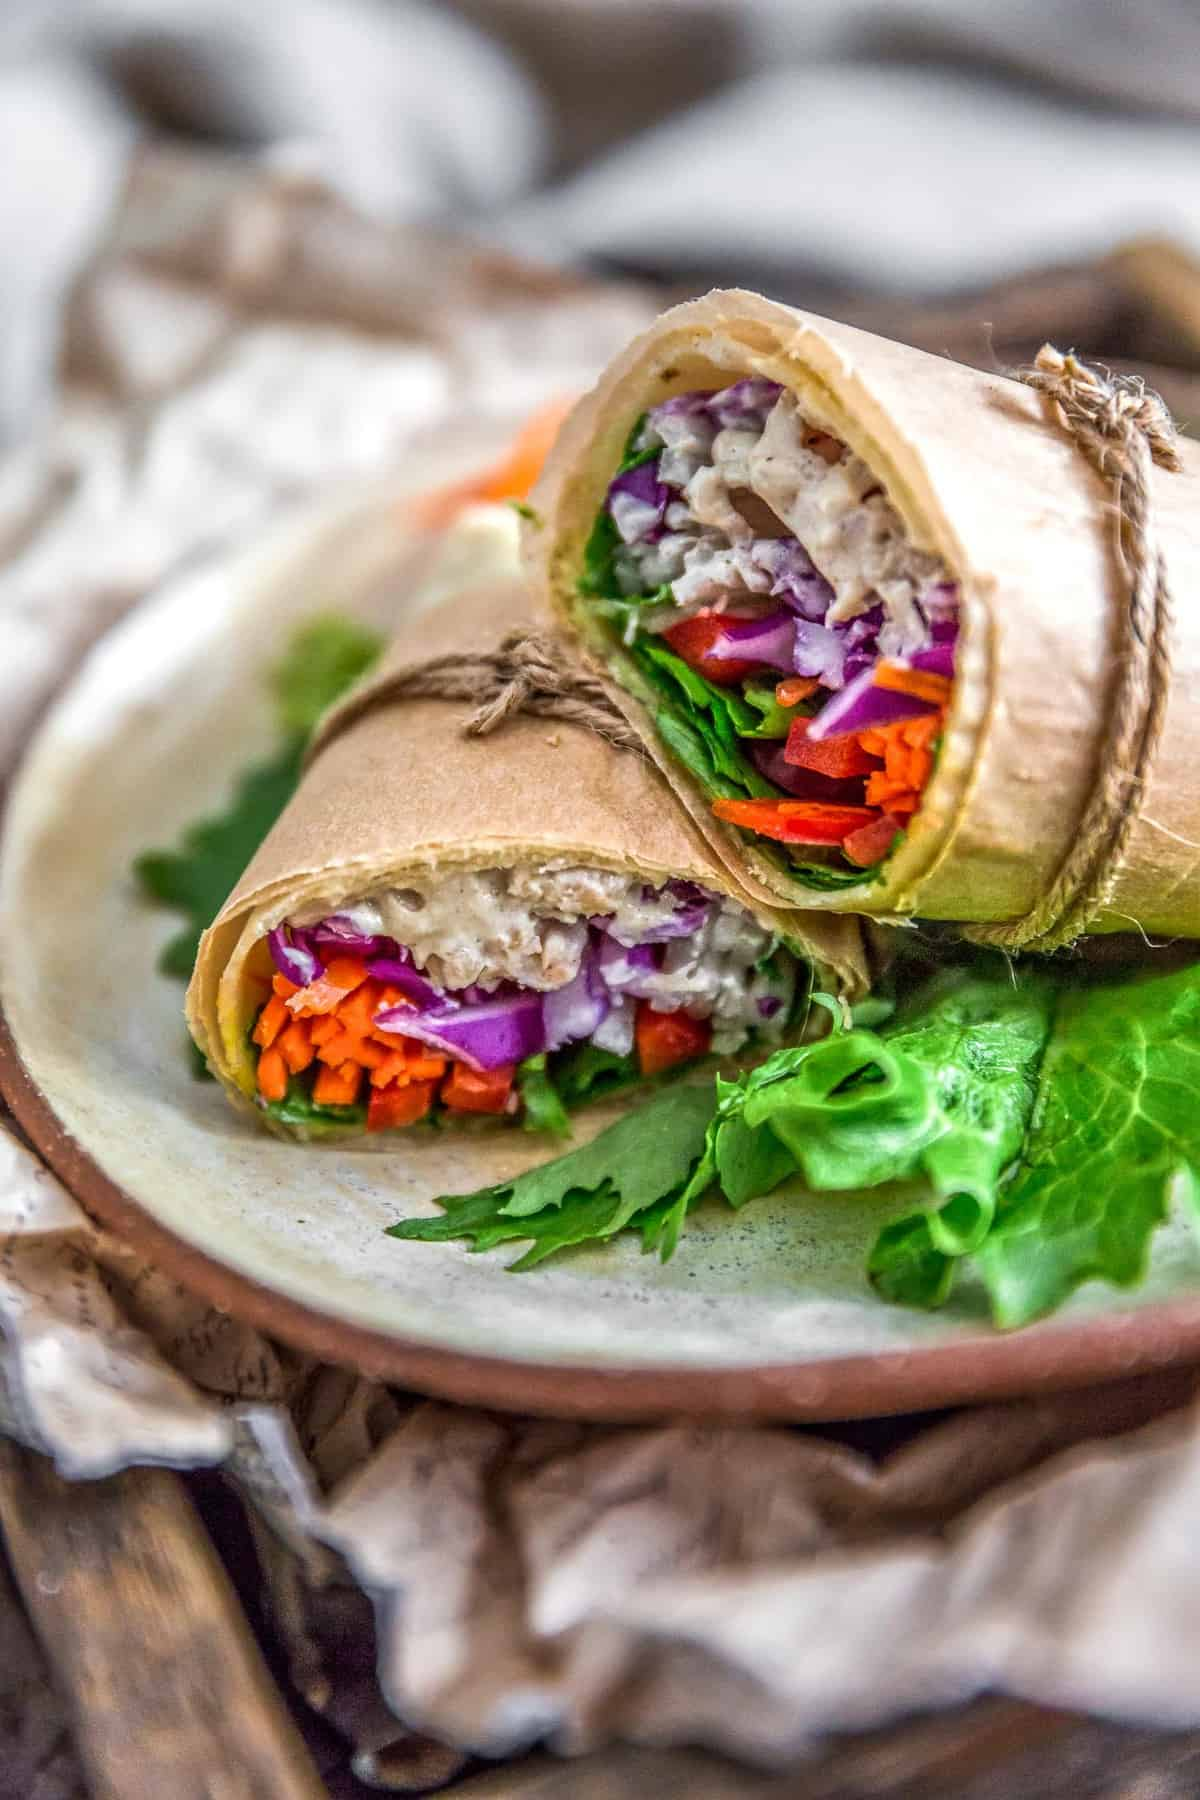 Vegan Tangy Honey Mustard Mayo in a wrap